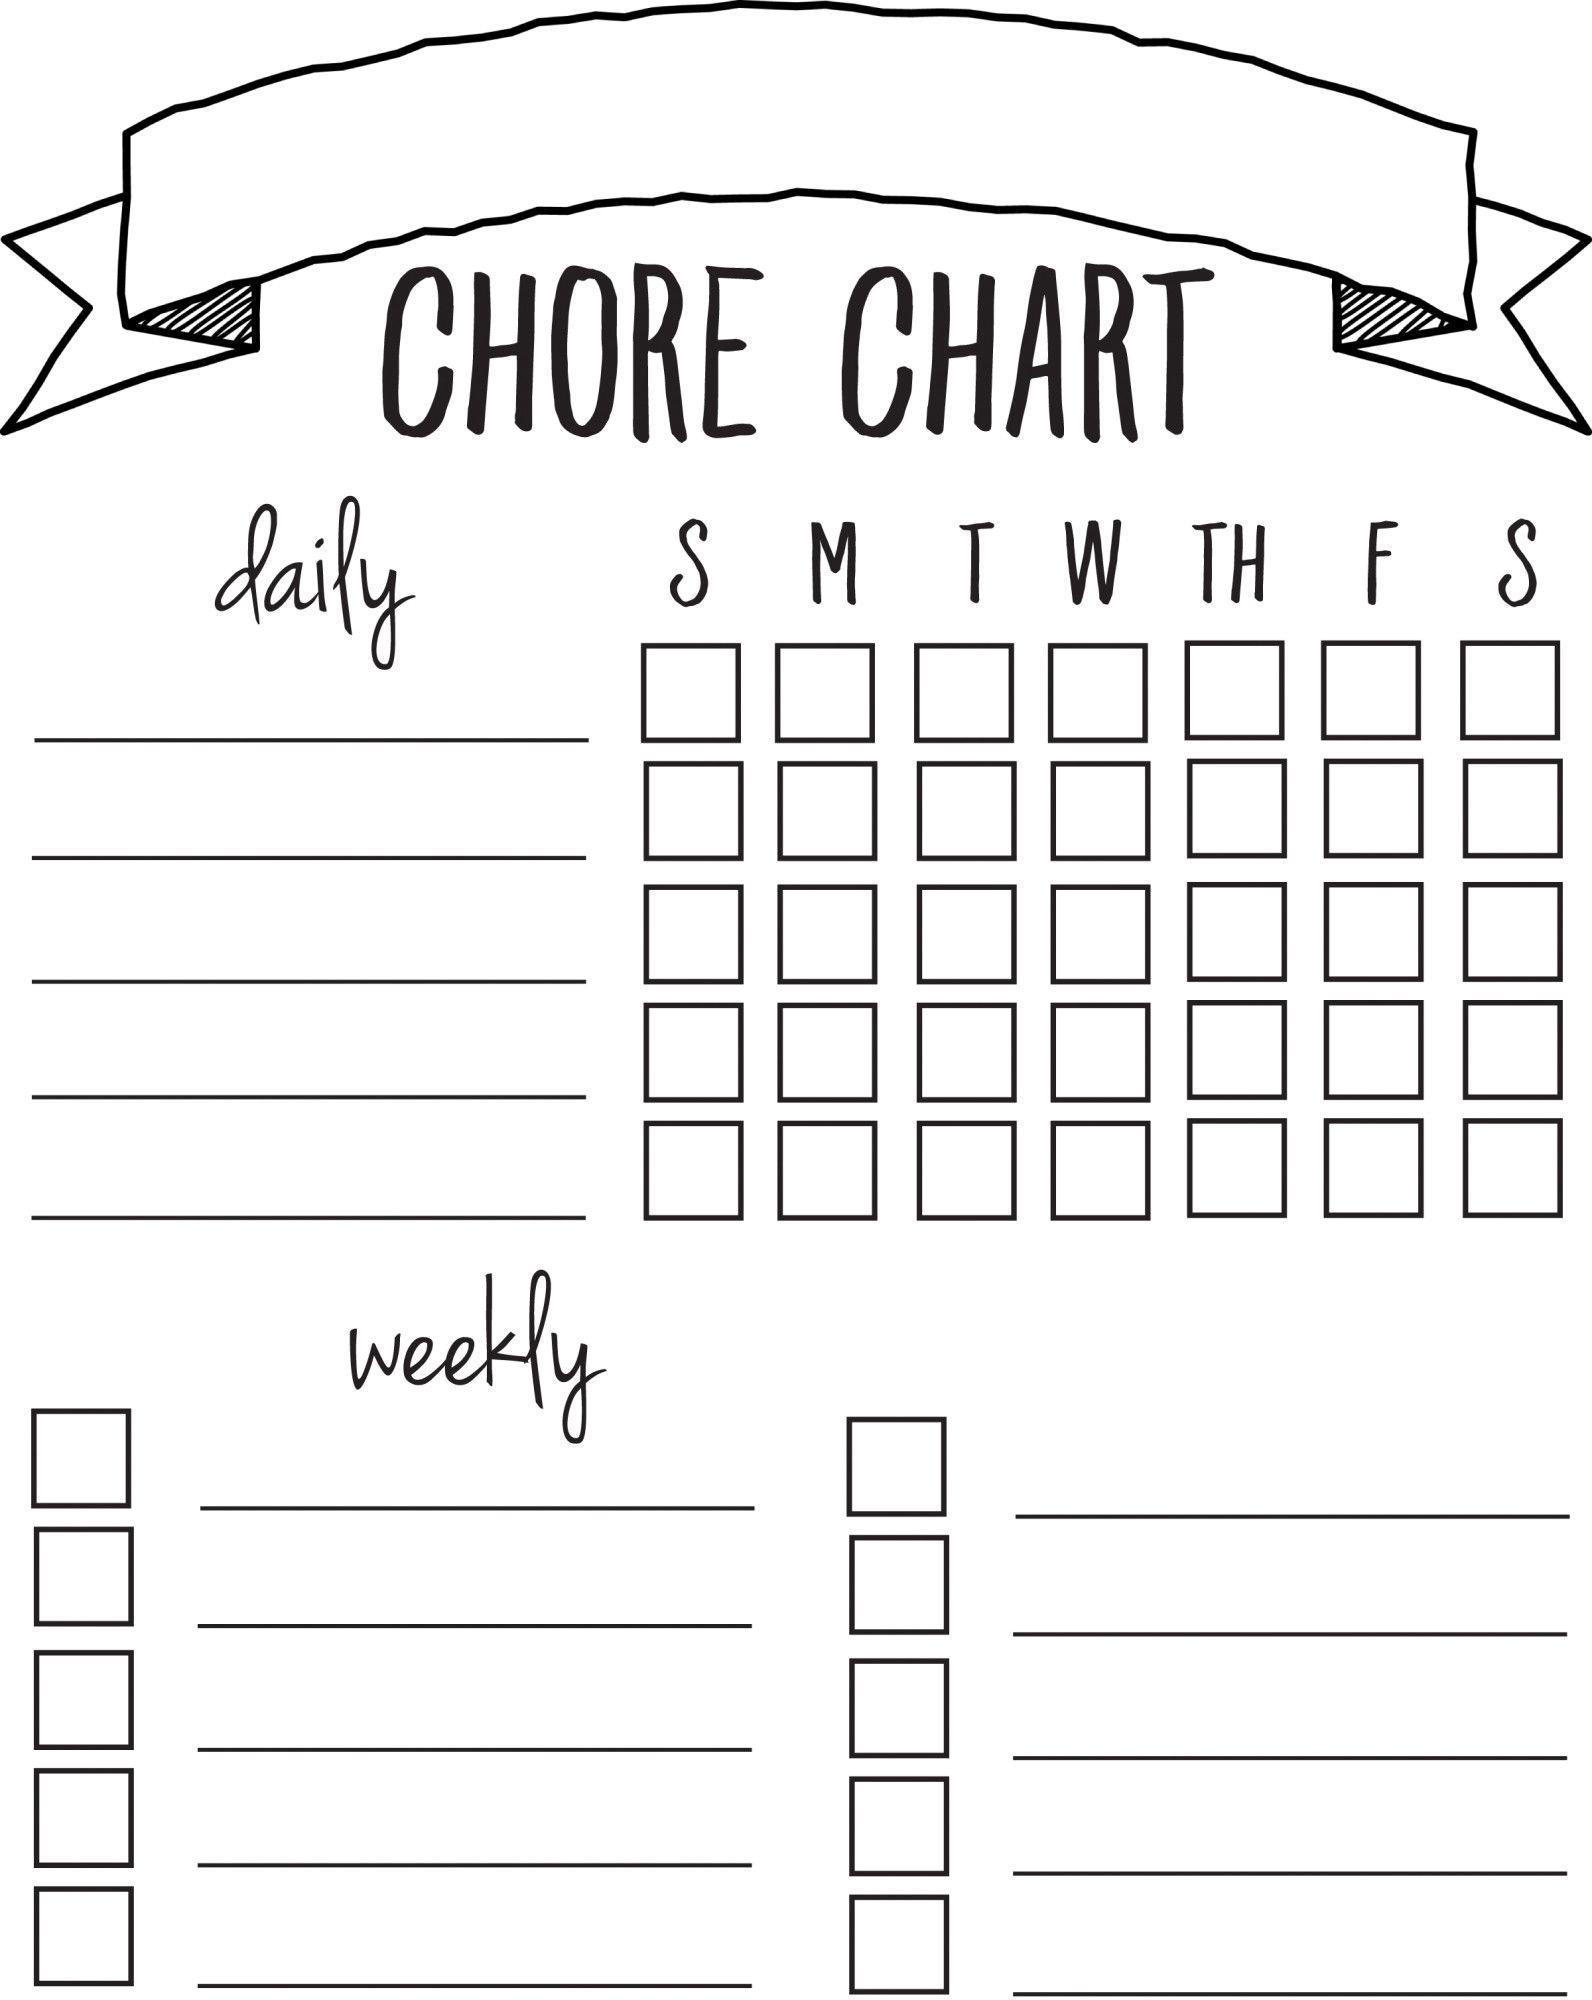 Diy Printable Chore Chart | Free Printables Nov/feb | Pinterest - Free Printable Chore List